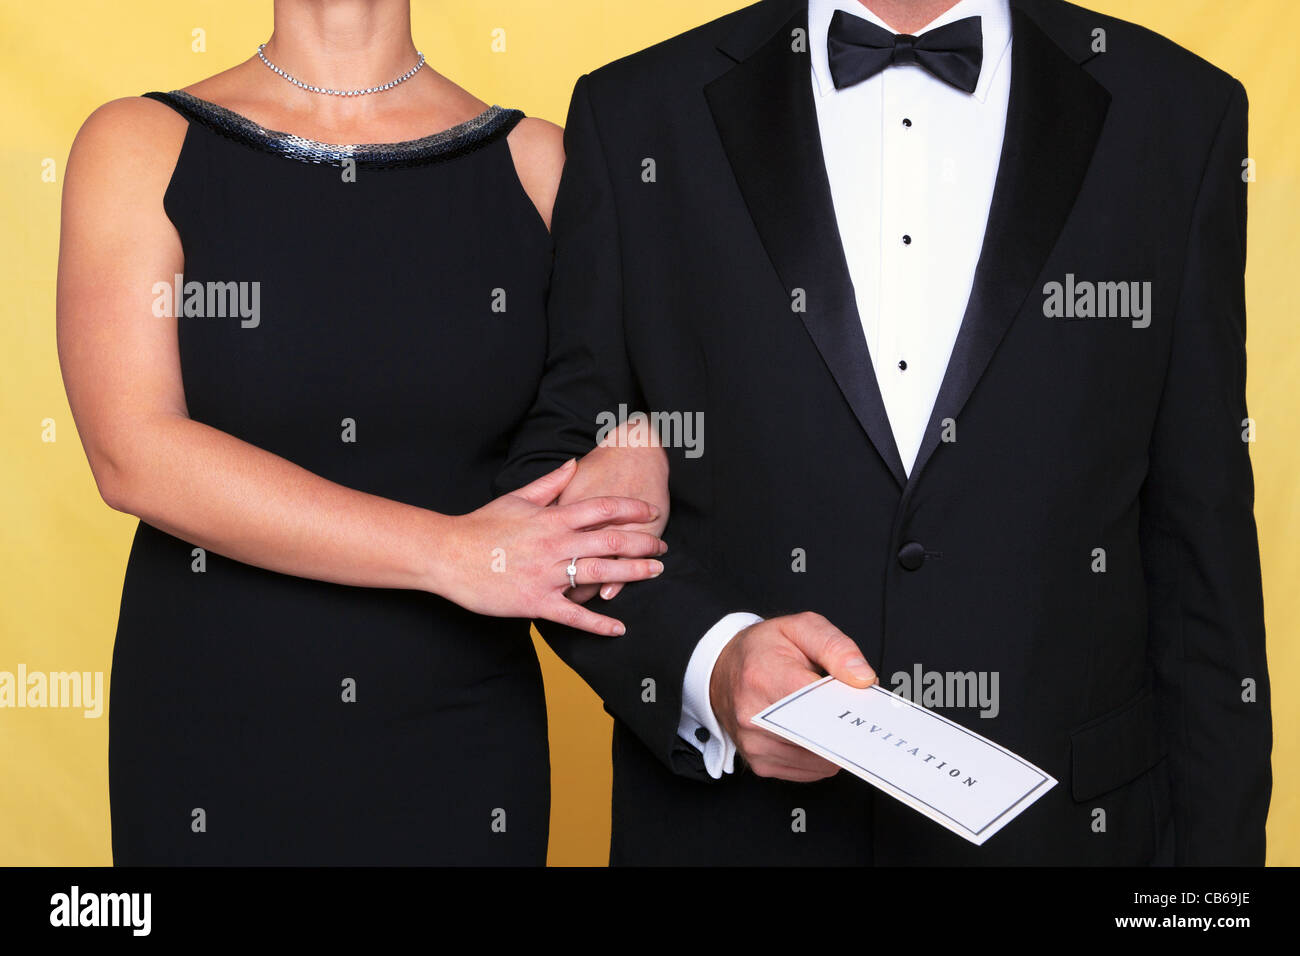 Photo of a couple in black tie evening wear, the man is holding an invitation. - Stock Image